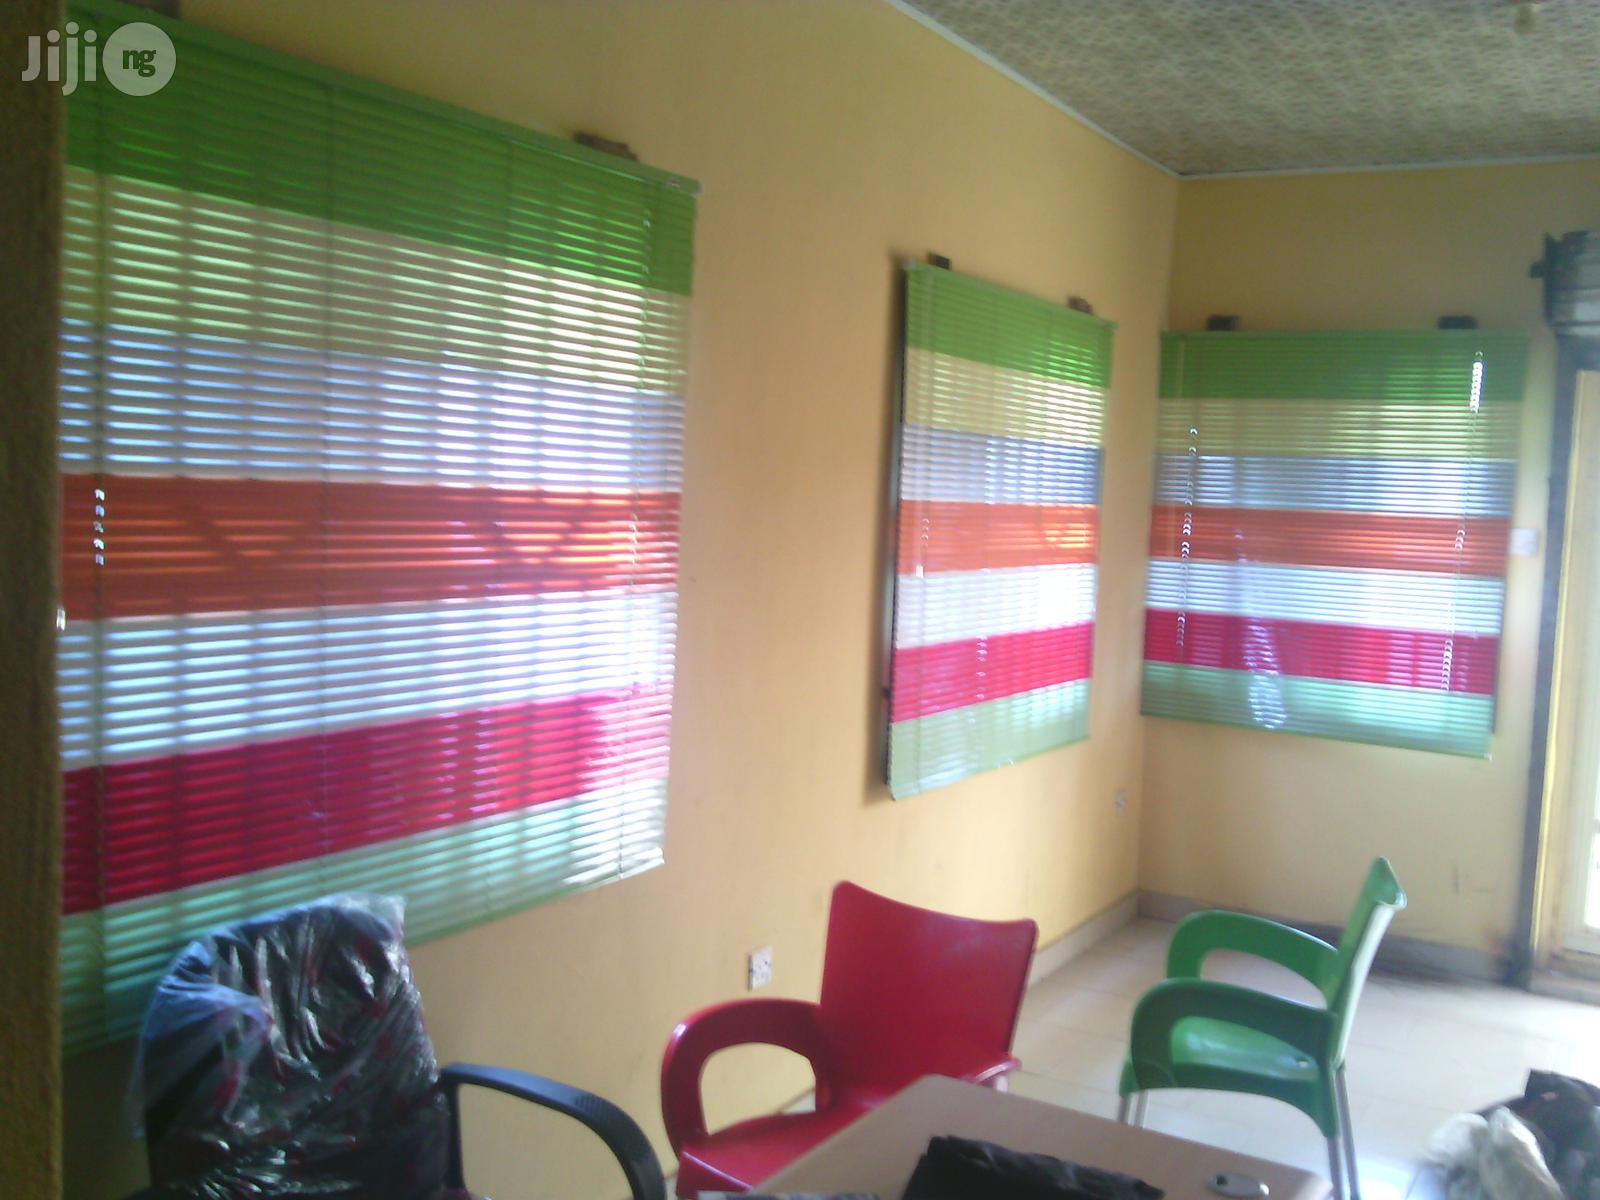 Window Blinds,Wallpaper,Painting,Furnitures and Curtains | Other Services for sale in Ibadan, Oyo State, Nigeria